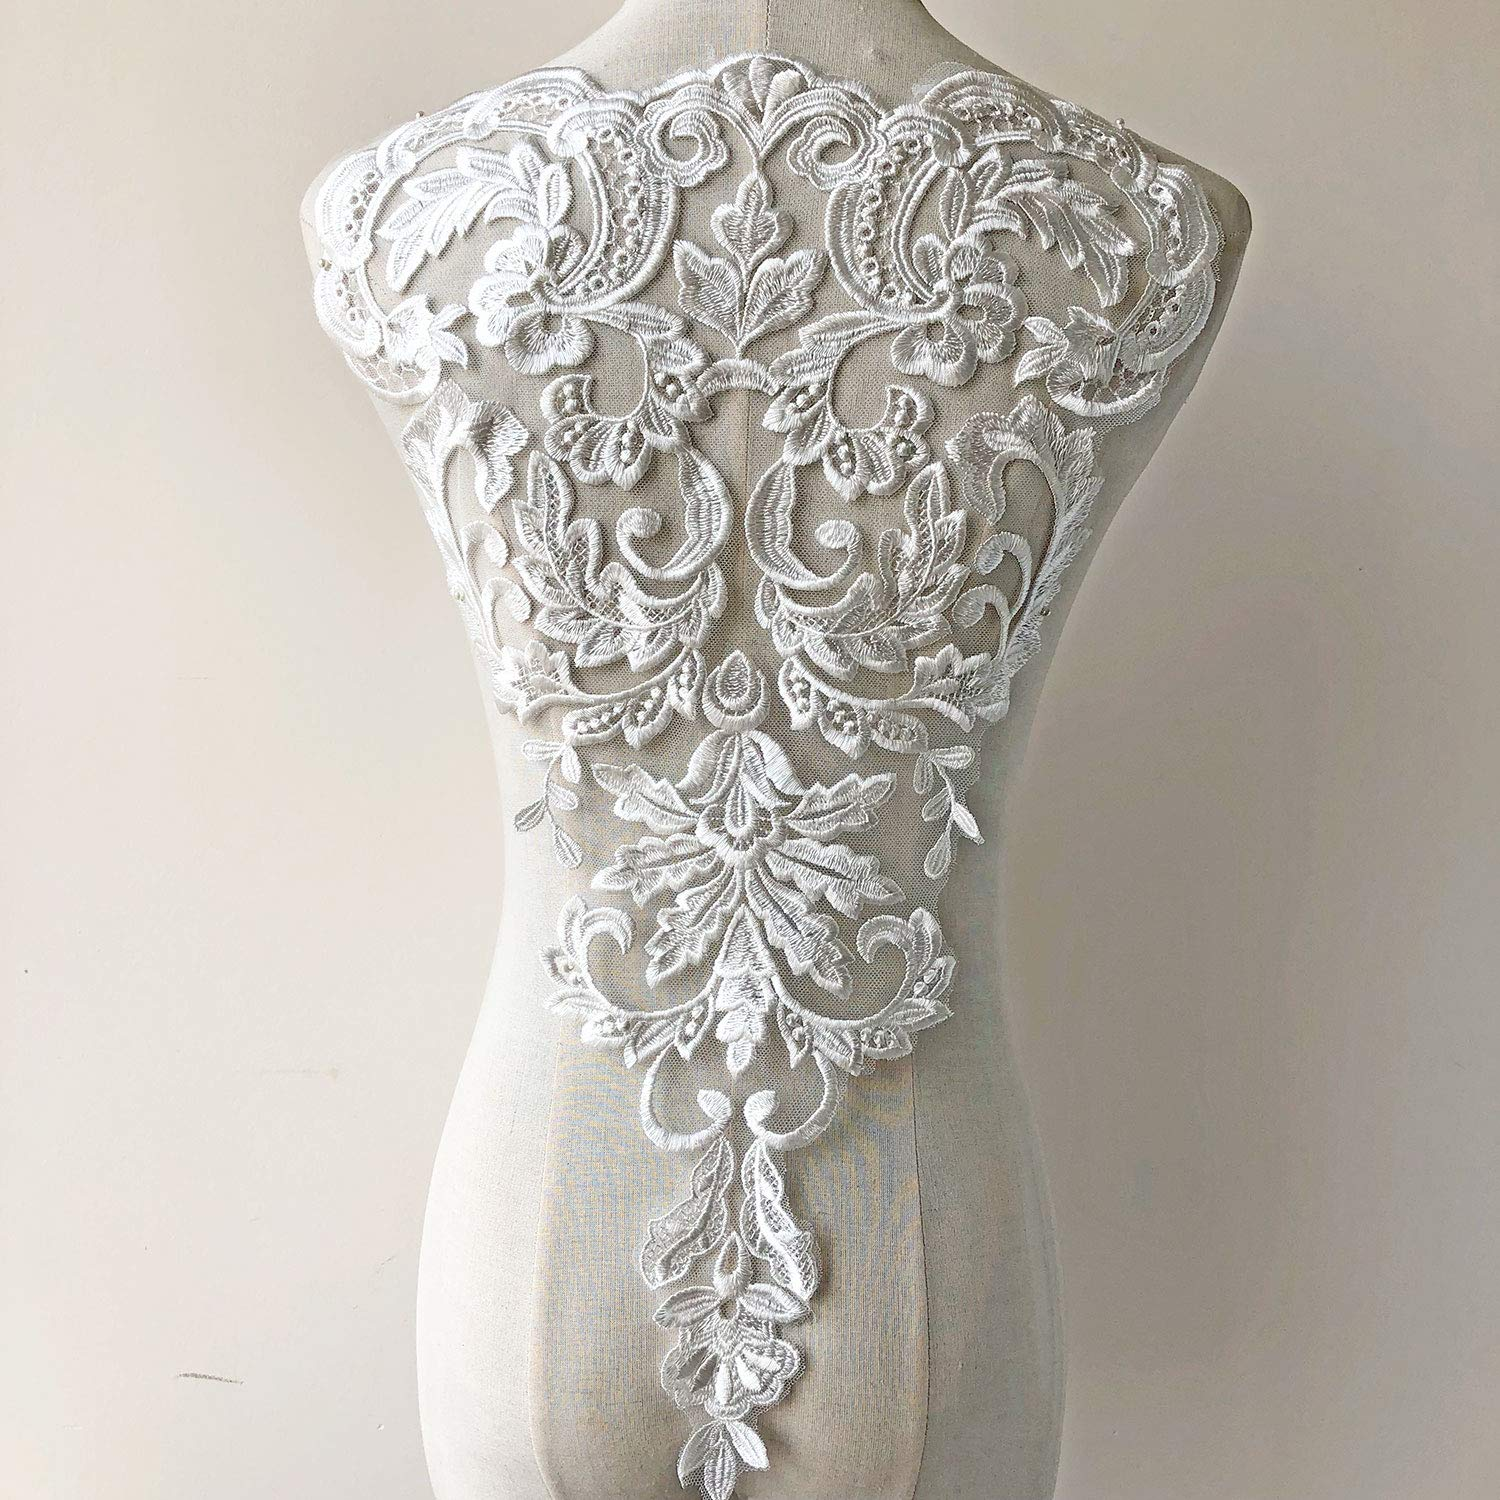 Vintage Venice Lace Applique Fine Embroidery Off-White Flower Lace Patch Sewing Addition for Ballgown Wedding Dresses Gown